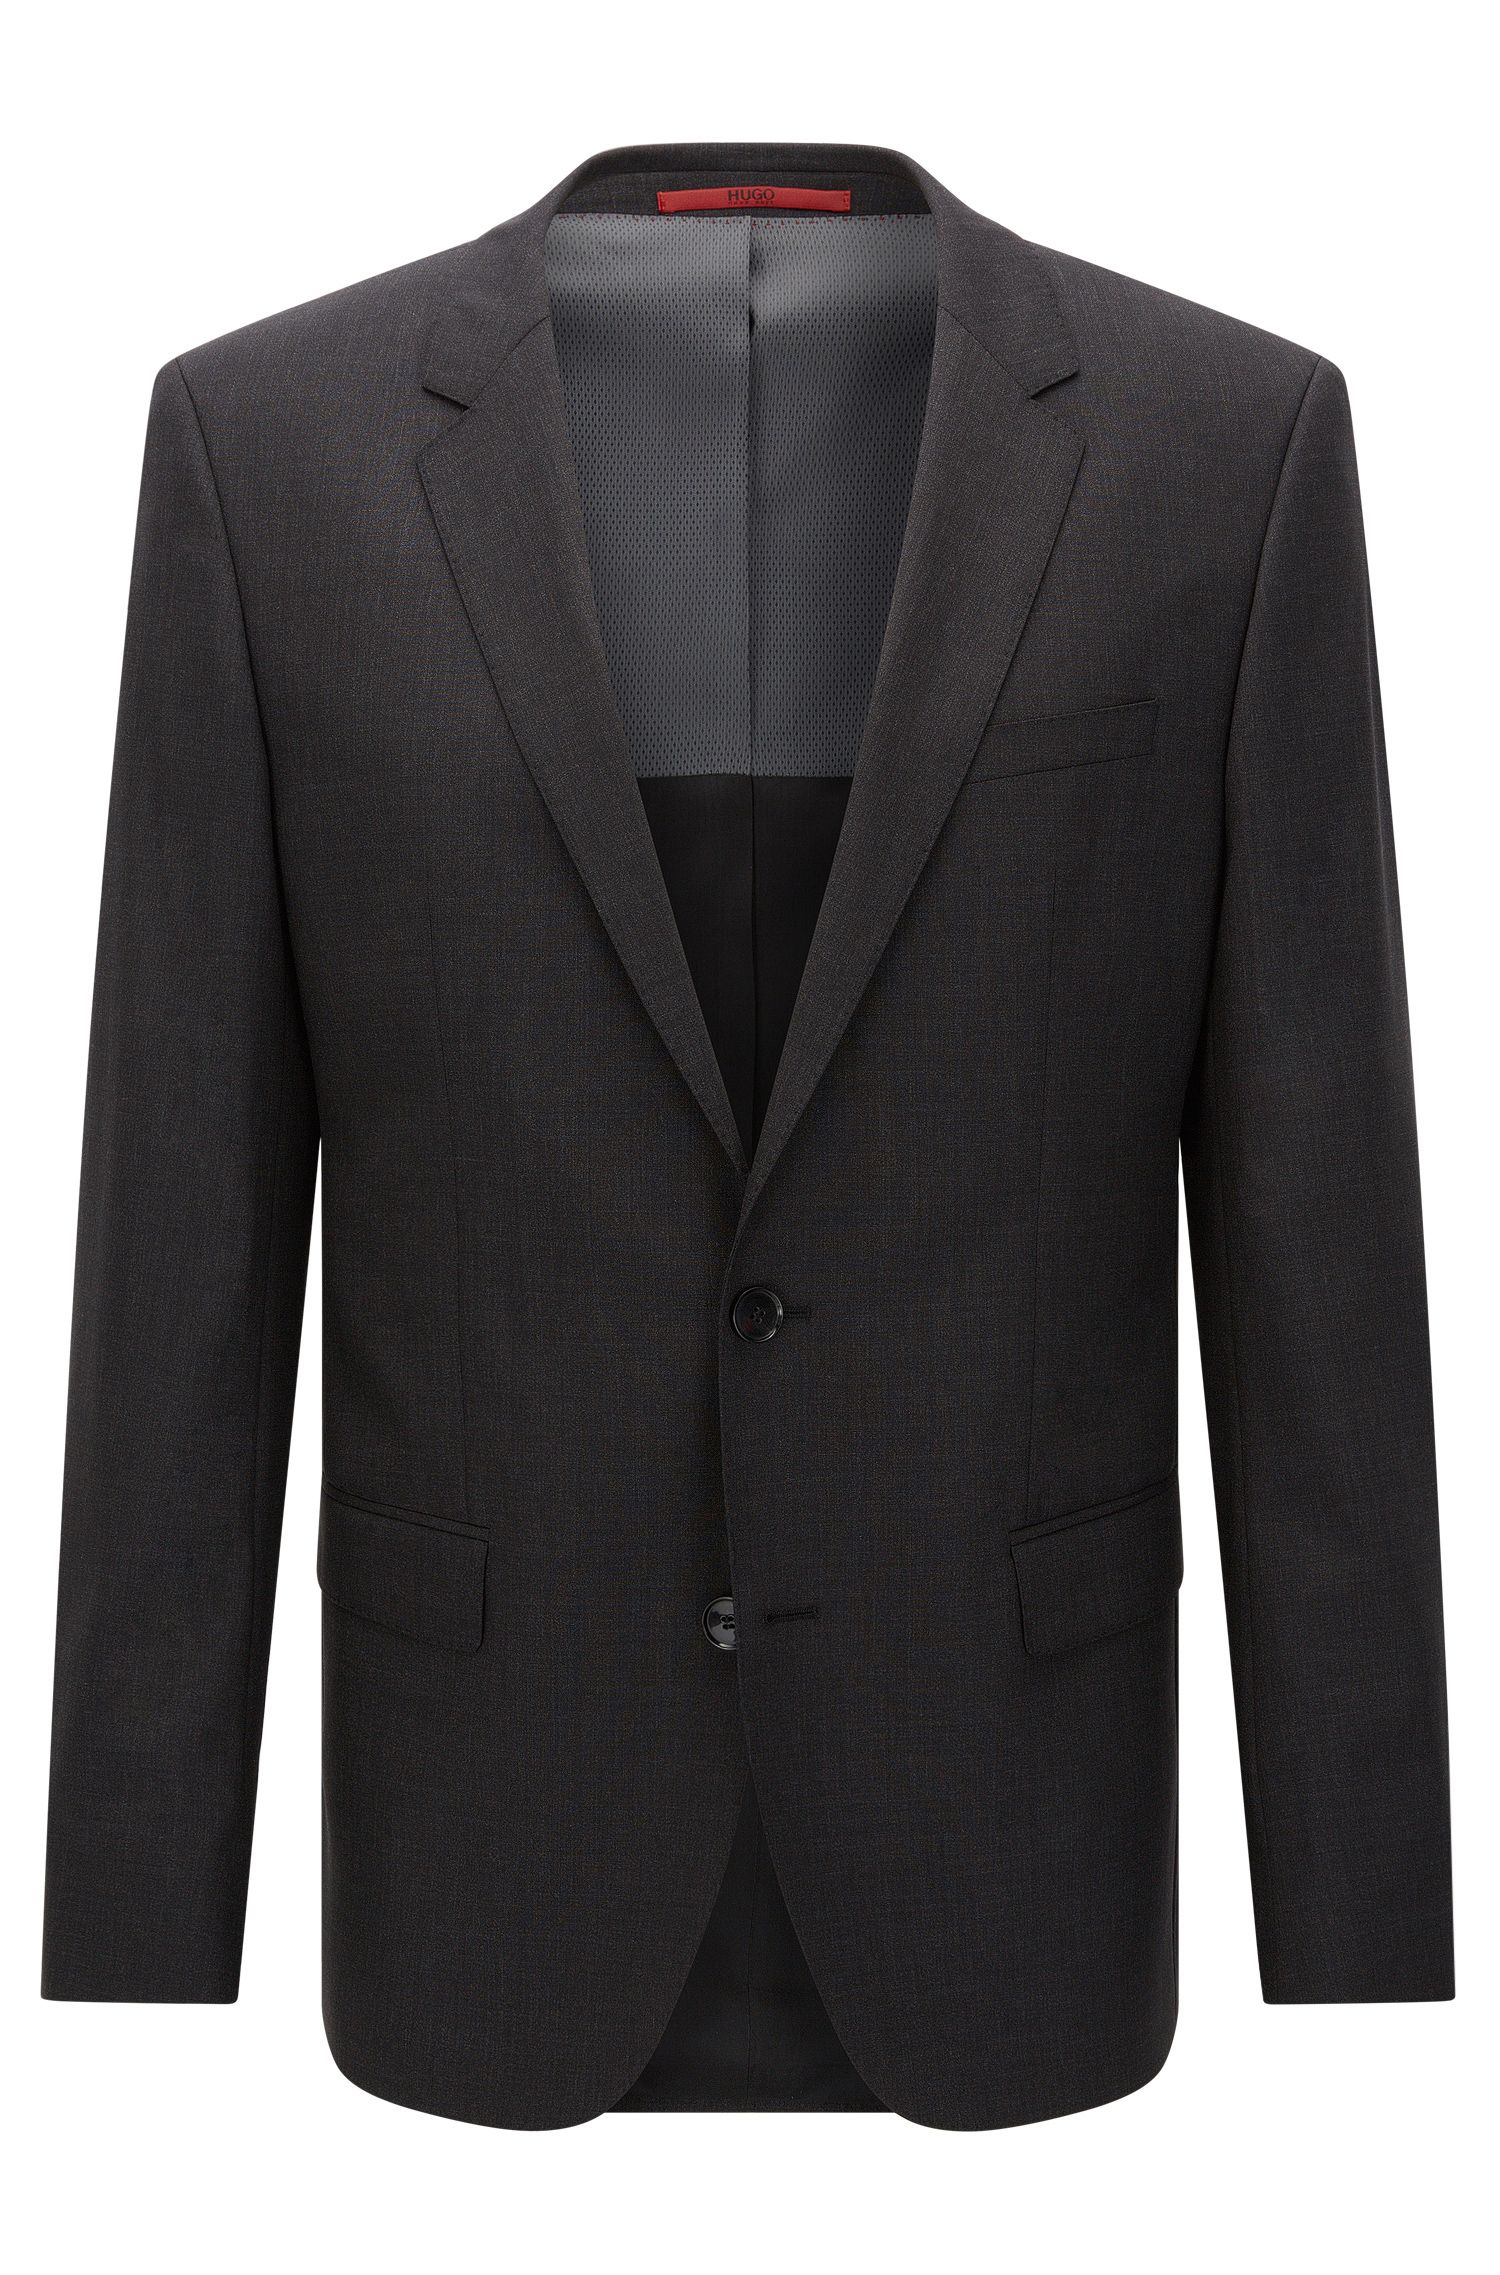 Veste de costume Slim Fit, en laine vierge stretch